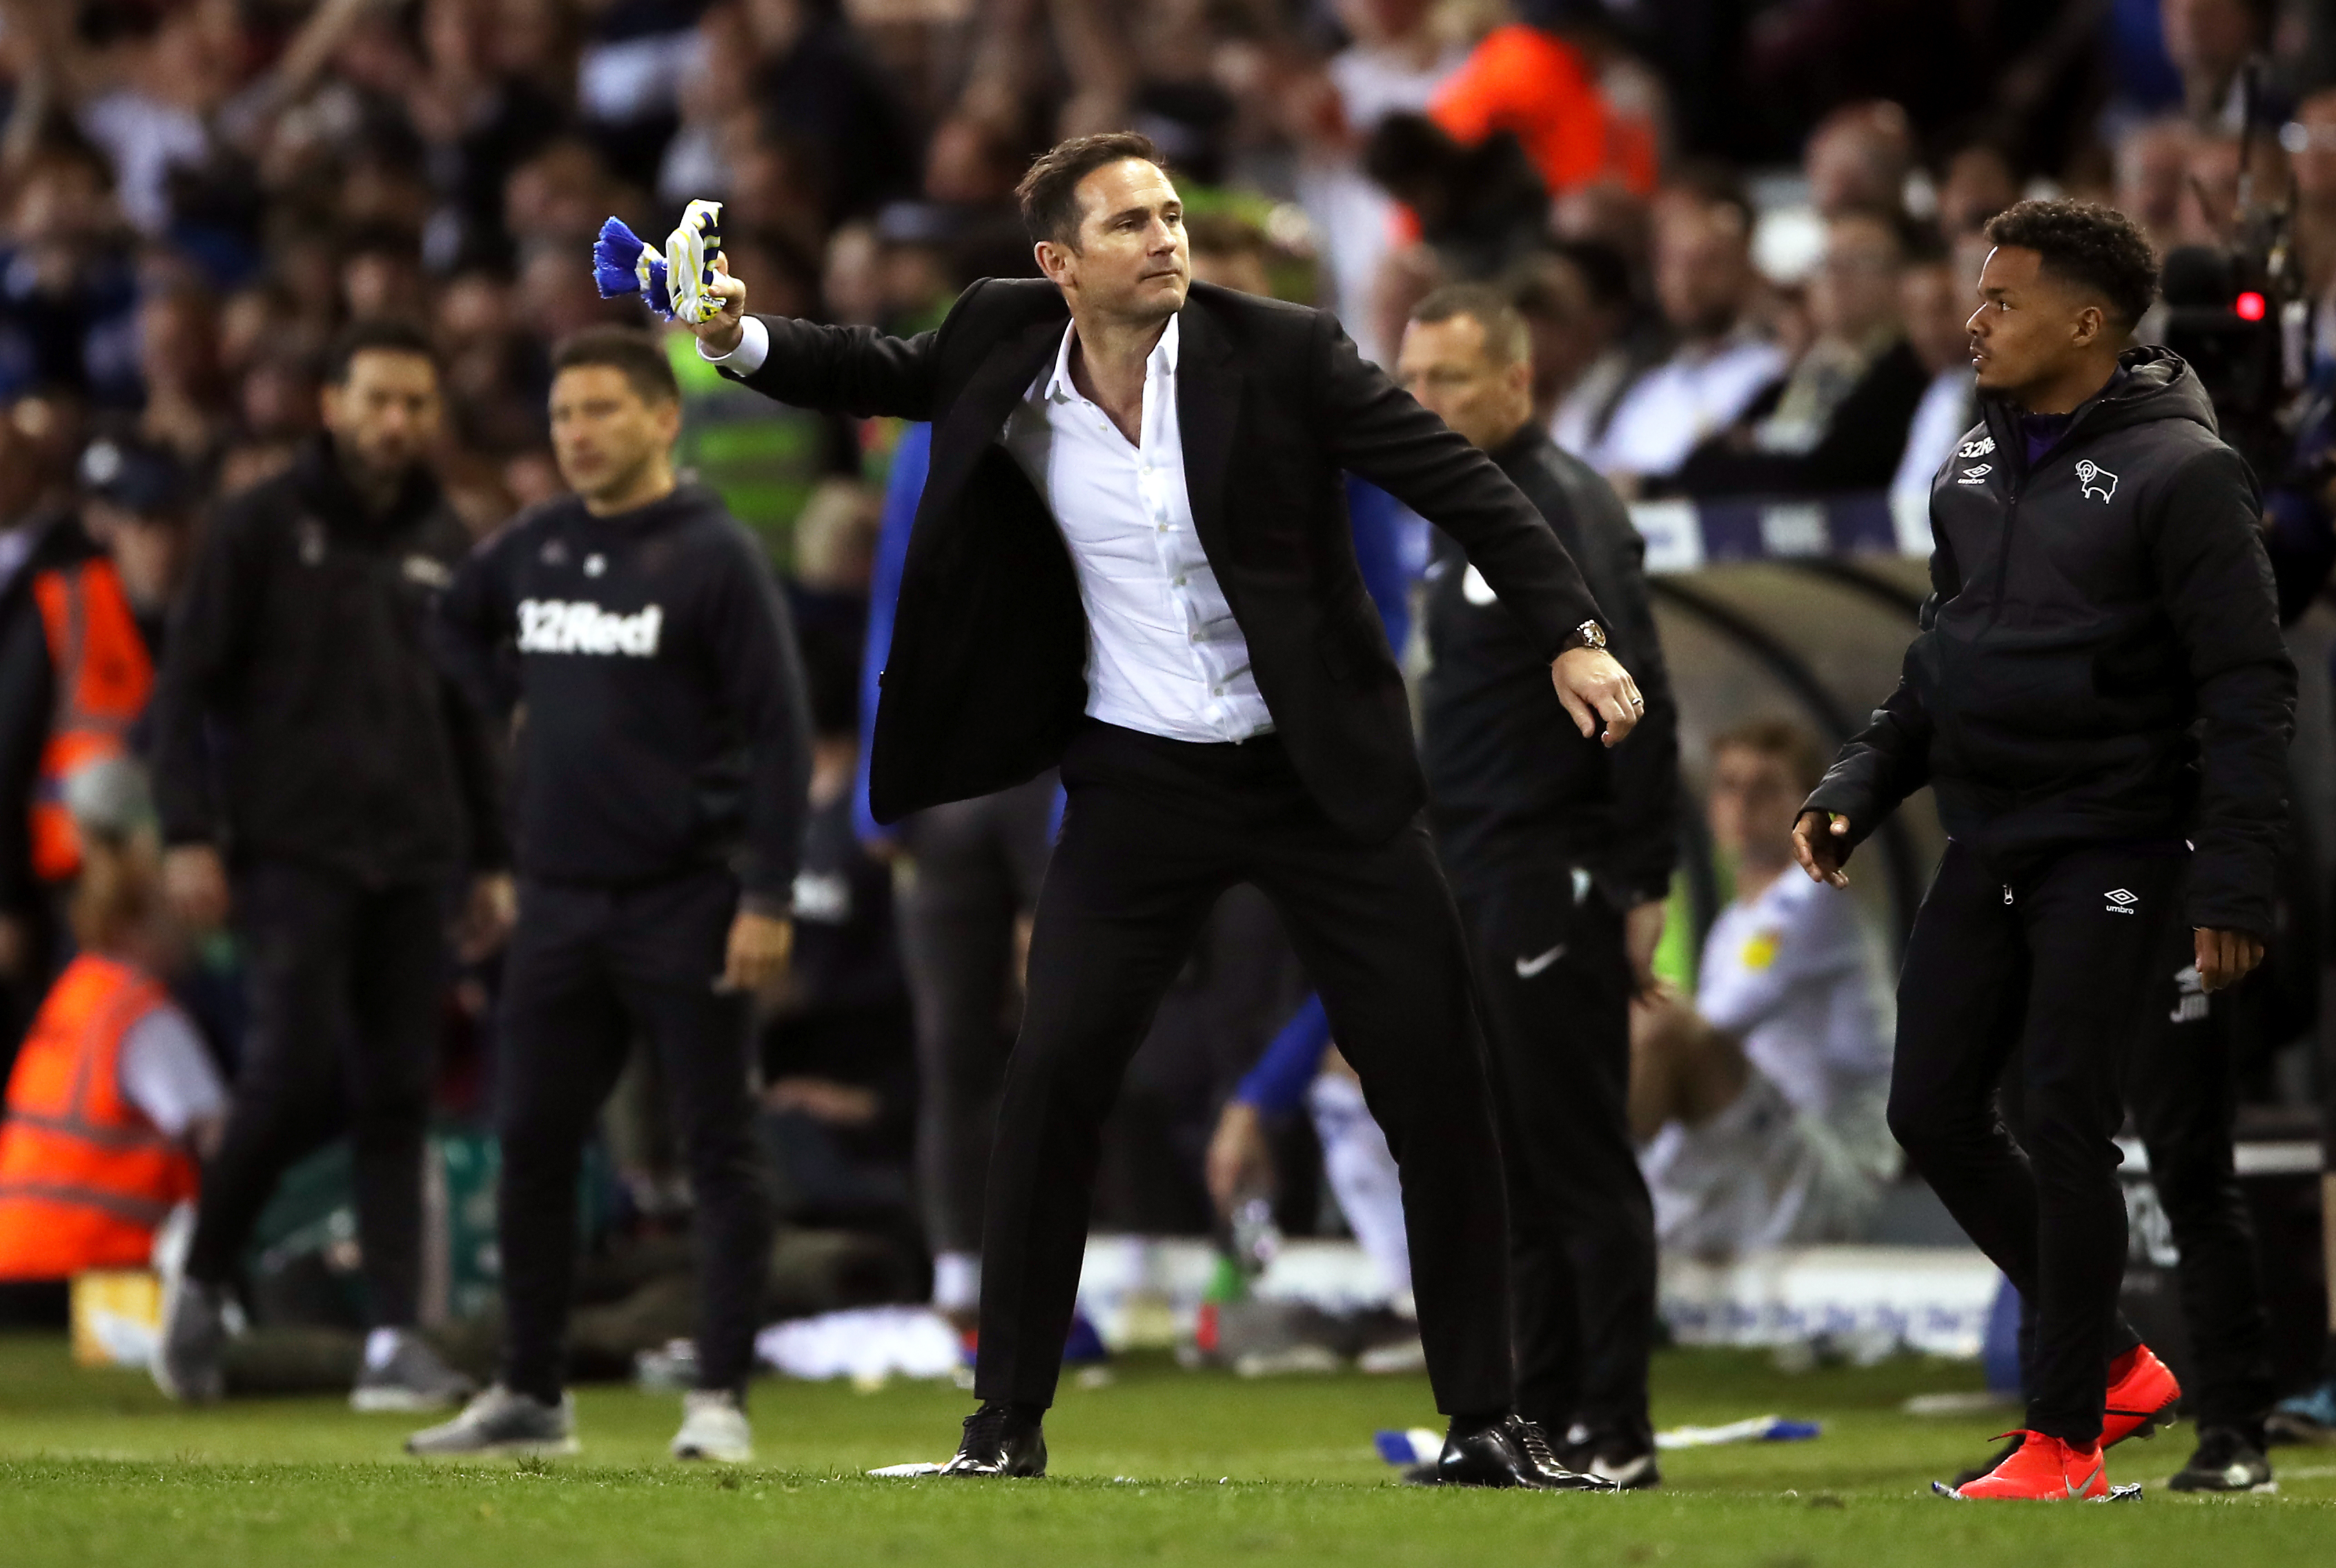 Lampard will manage Derby in the Championship play-off final on Monday but could be Chelsea boss. Image: PA Images